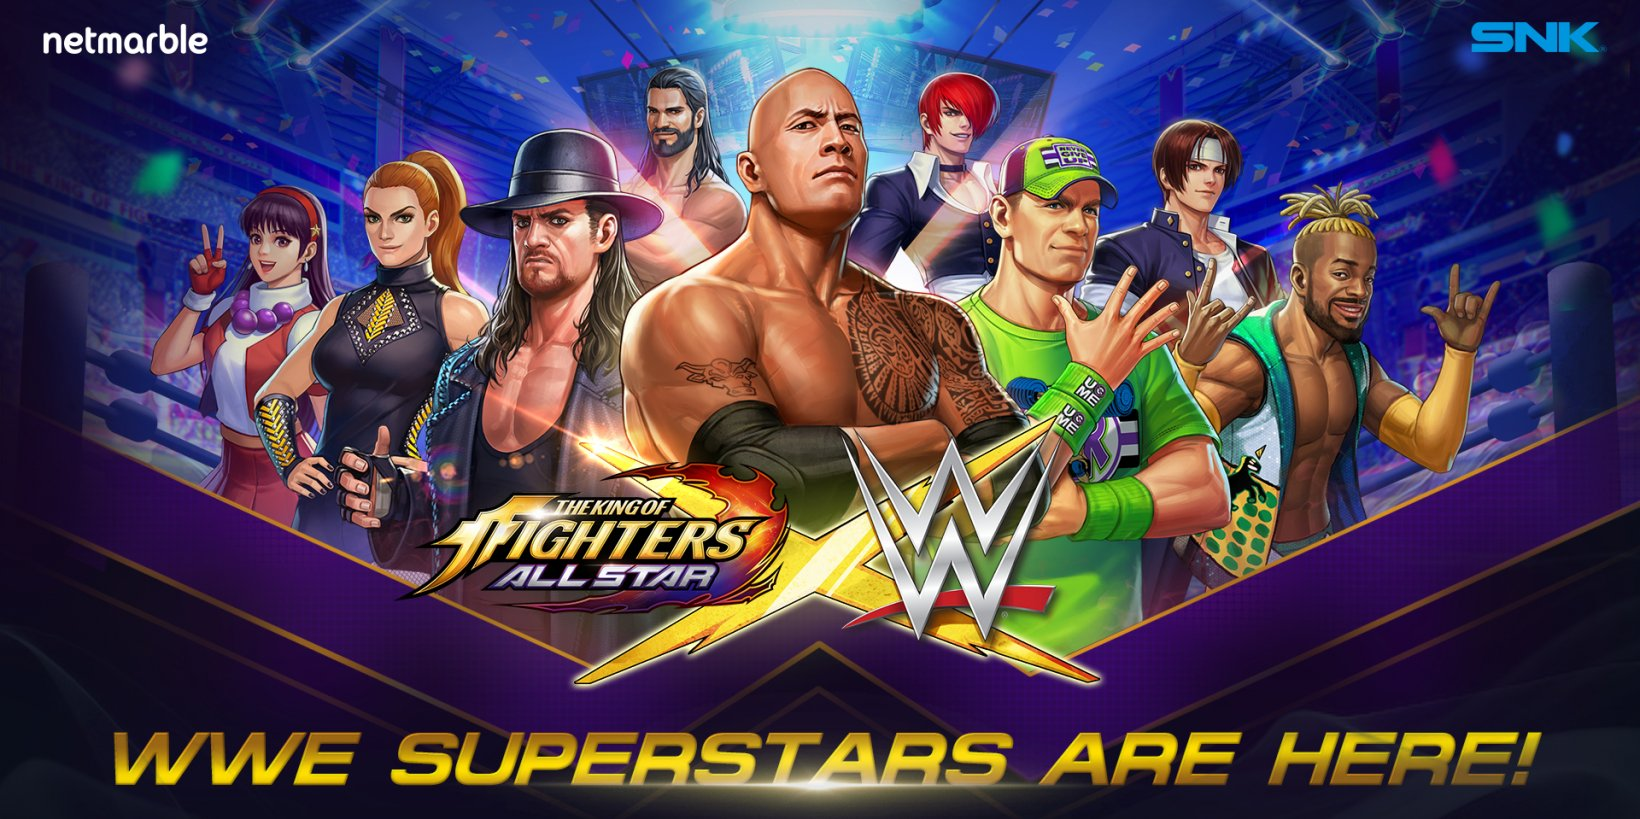 The King of Fighters ALLSTAR adds WWE superstars including The Rock, John Cena, and Undertaker to its giant roster